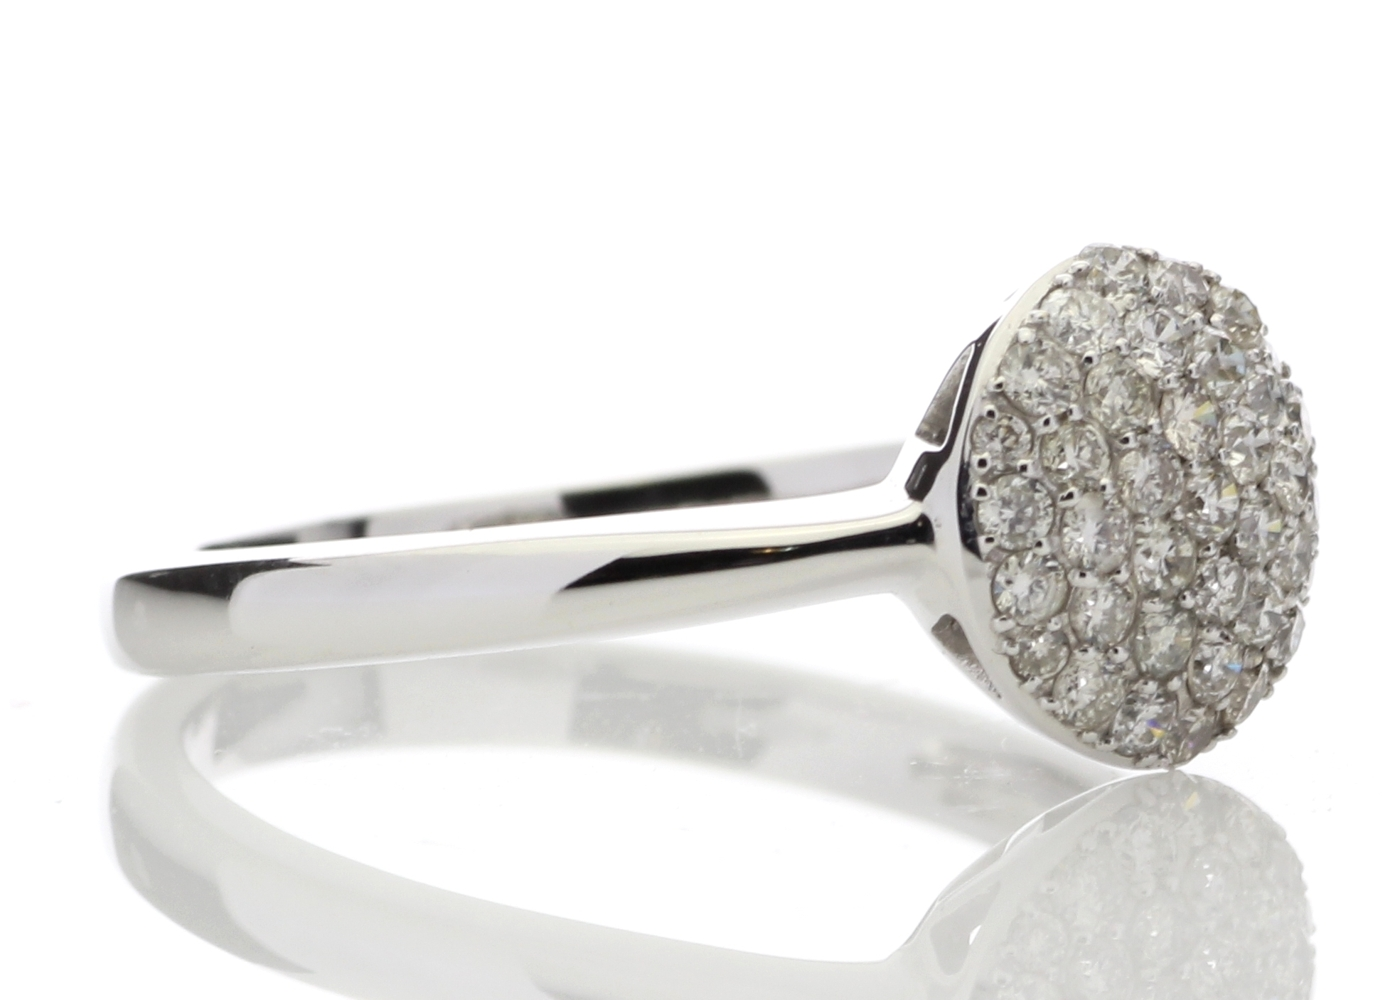 Lot 55 - 9ct White Gold Diamond Cluster Ring 0.51 Carats